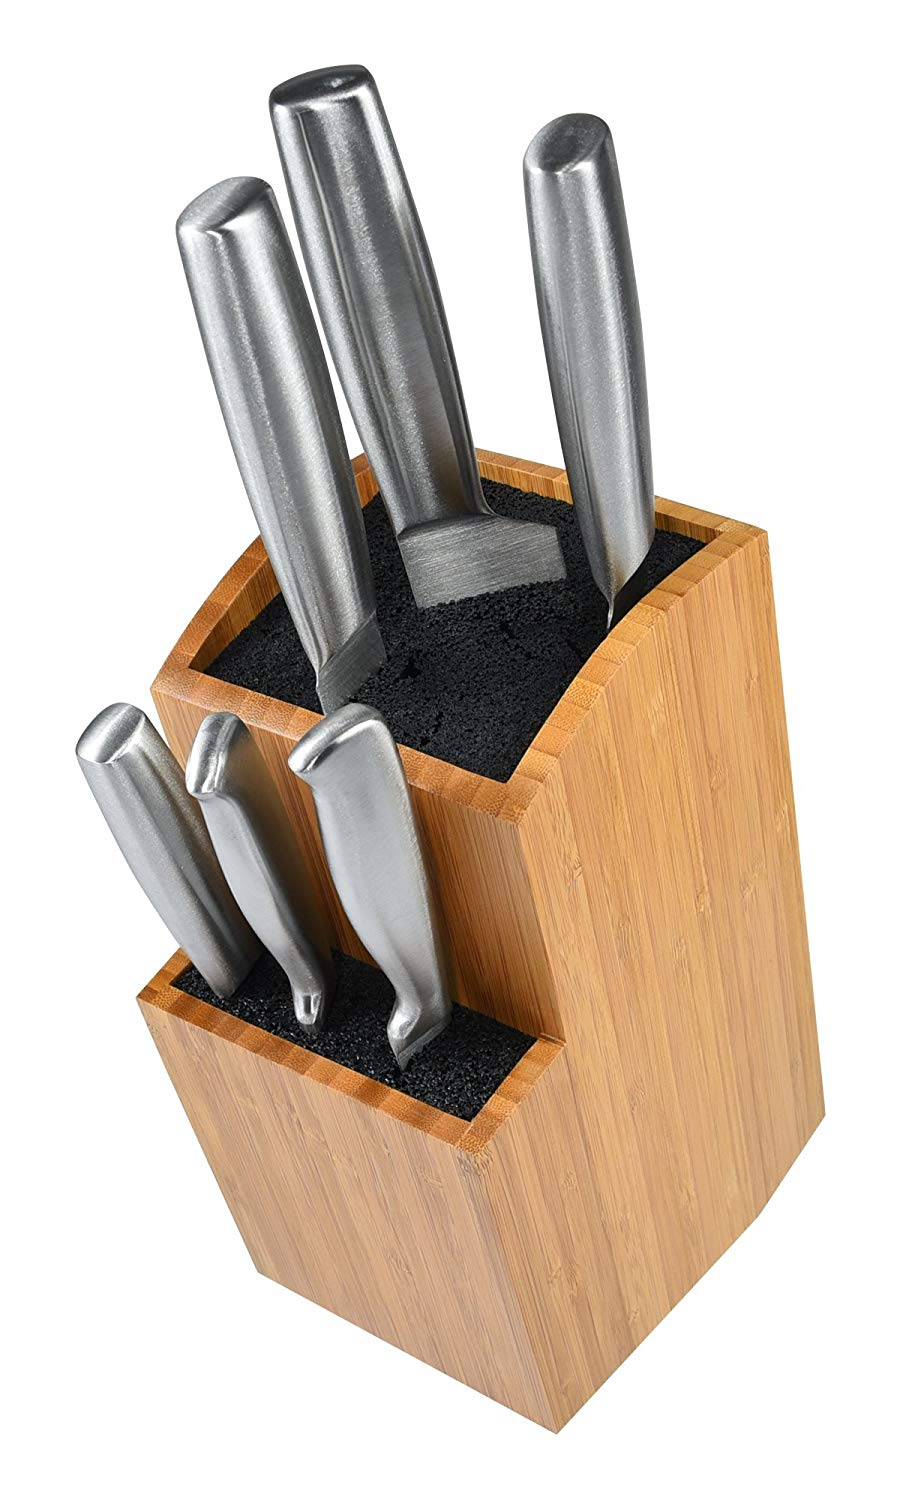 Tiered slotless knife organizer